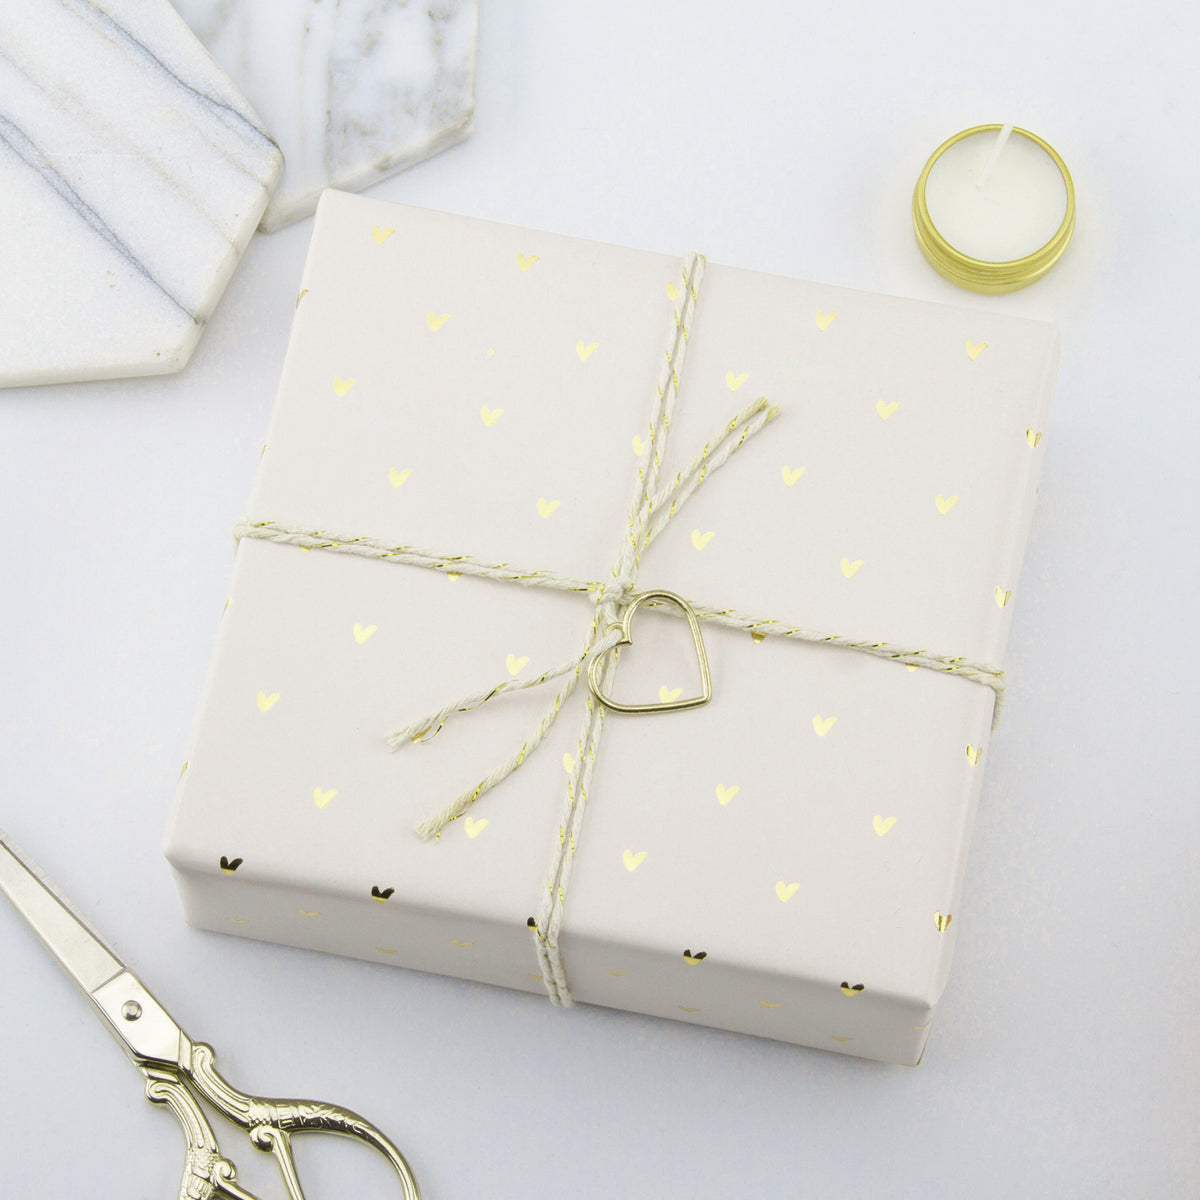 Wrapaholic-Pastel-Pink-Color-with-Gold-Foil-Sweet-Heart- Design-Gift-Wrapping-Paper-Roll-4